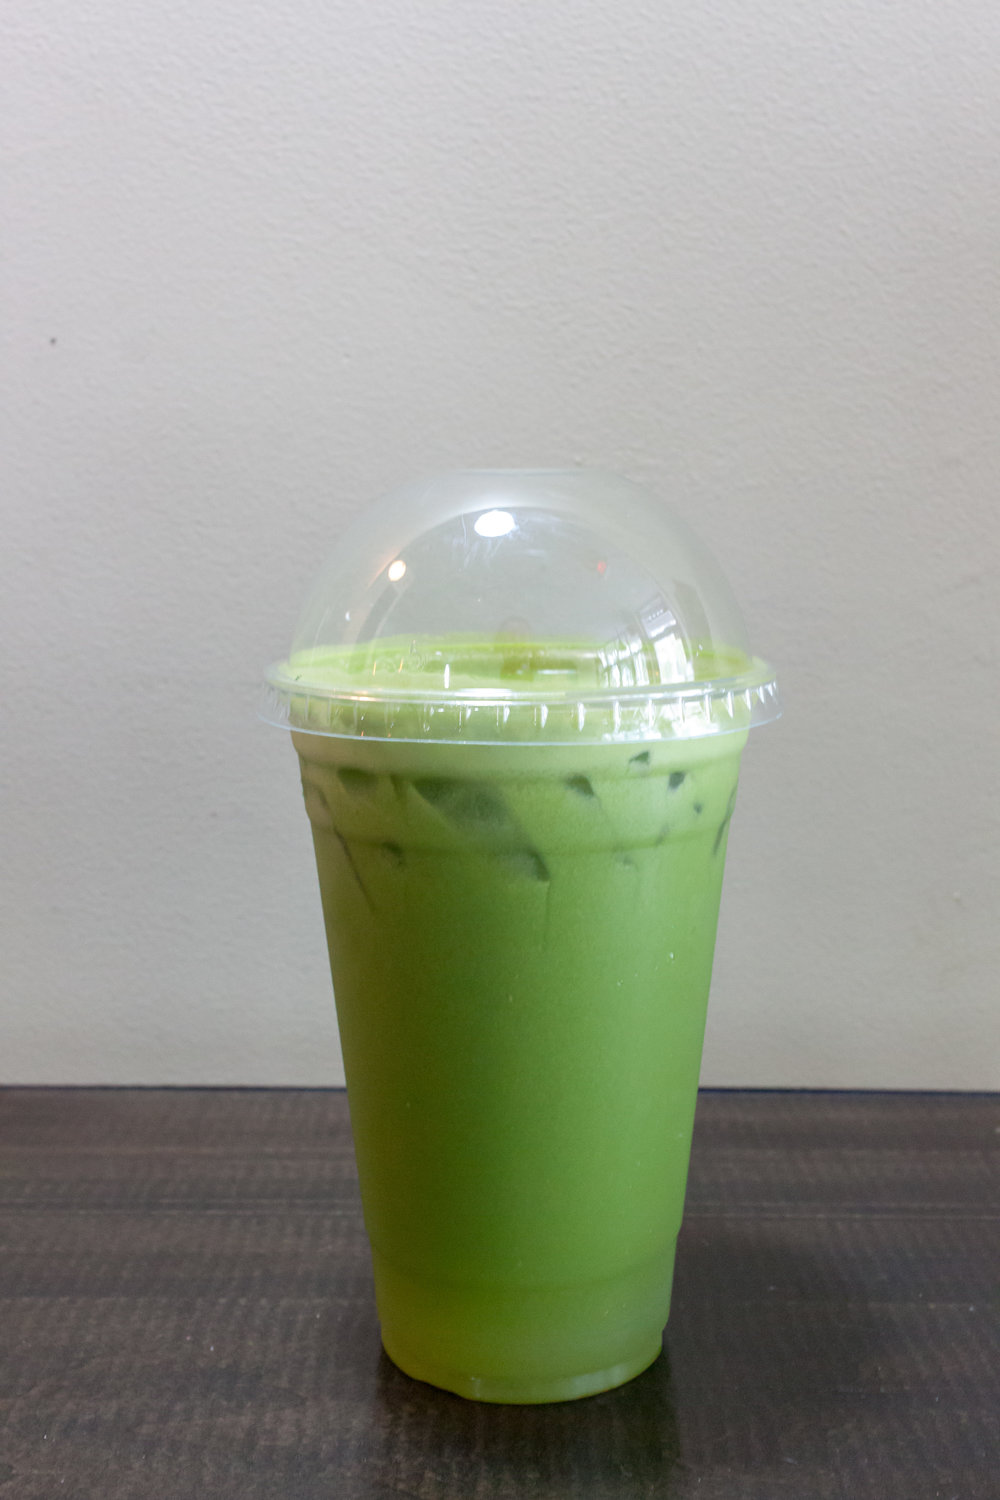 Pressed Juice All Day Breakfast Cassava House Cassava house NYC Sandwiches Salads Smoothies Wraps Juice Bar East Harlem NYC